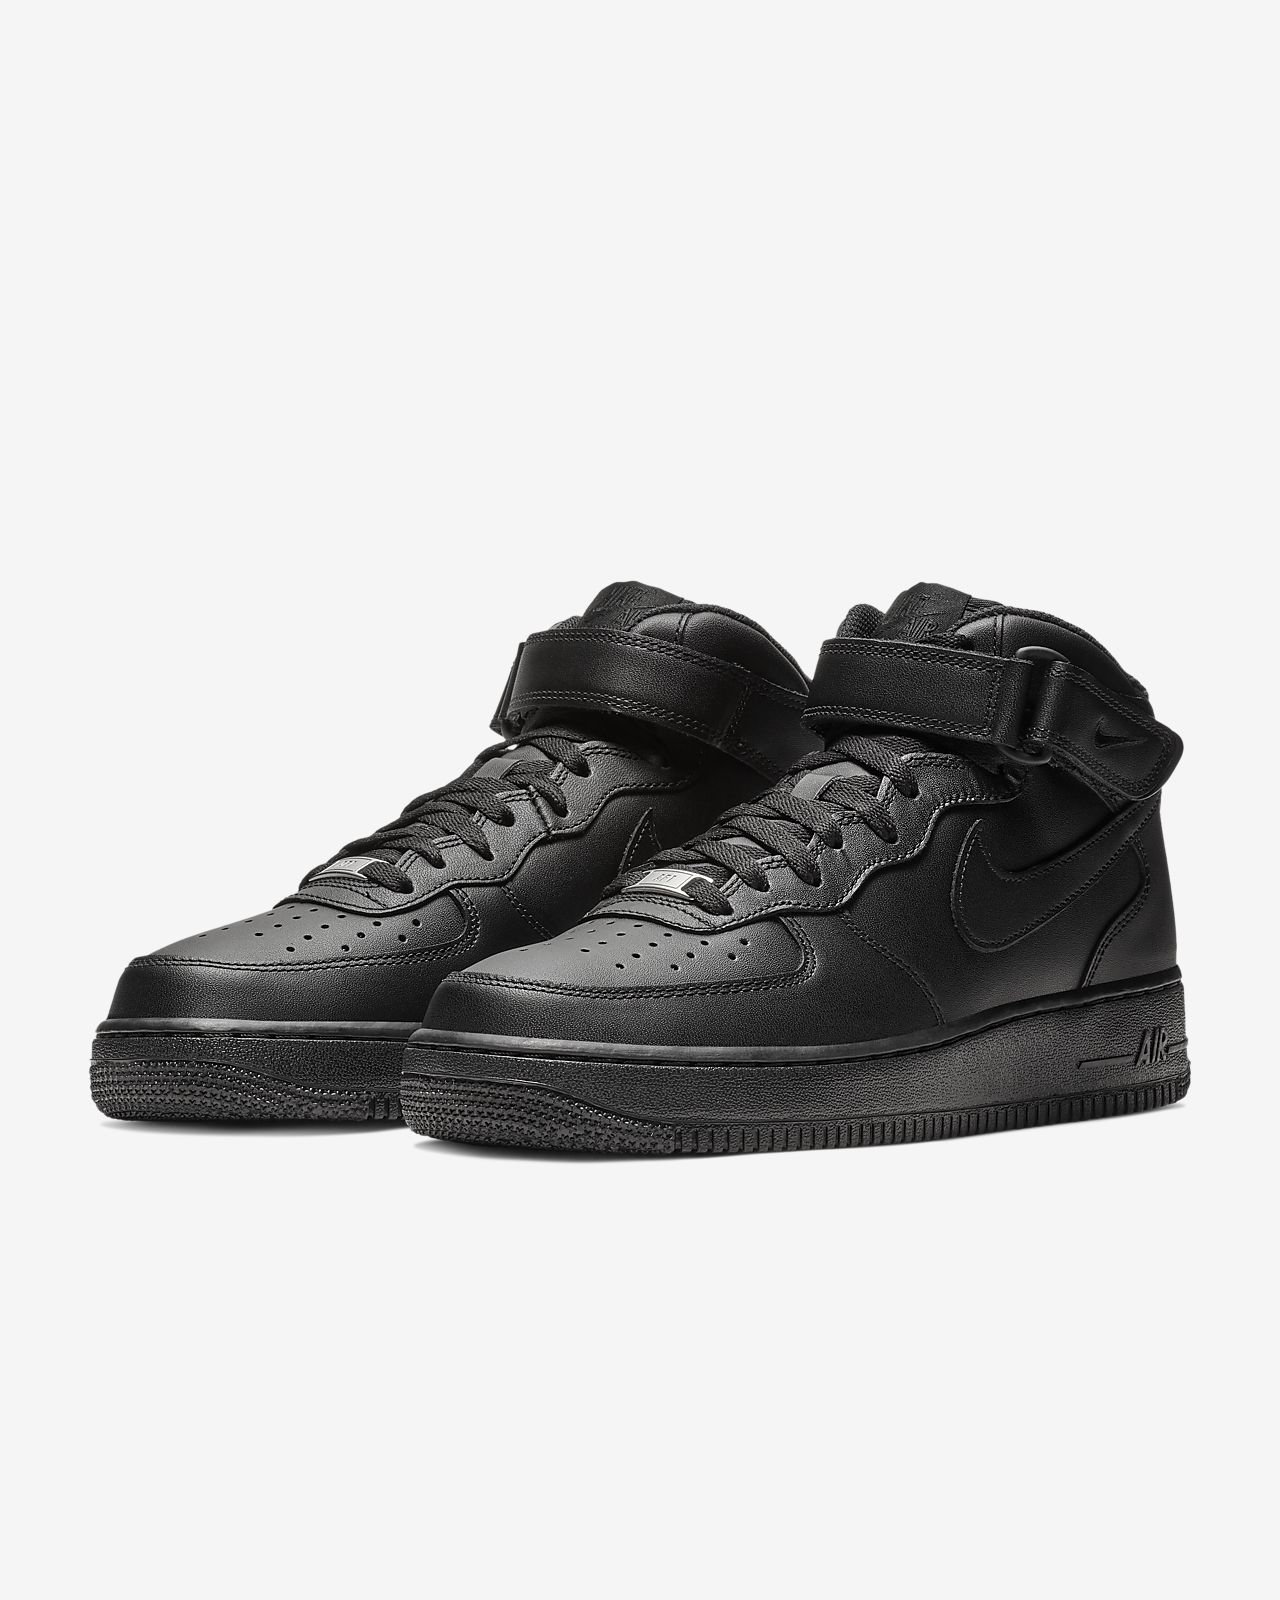 105b49b8d32b5 Nike Air Force 1 Mid '07 Men's Shoe. Nike.com